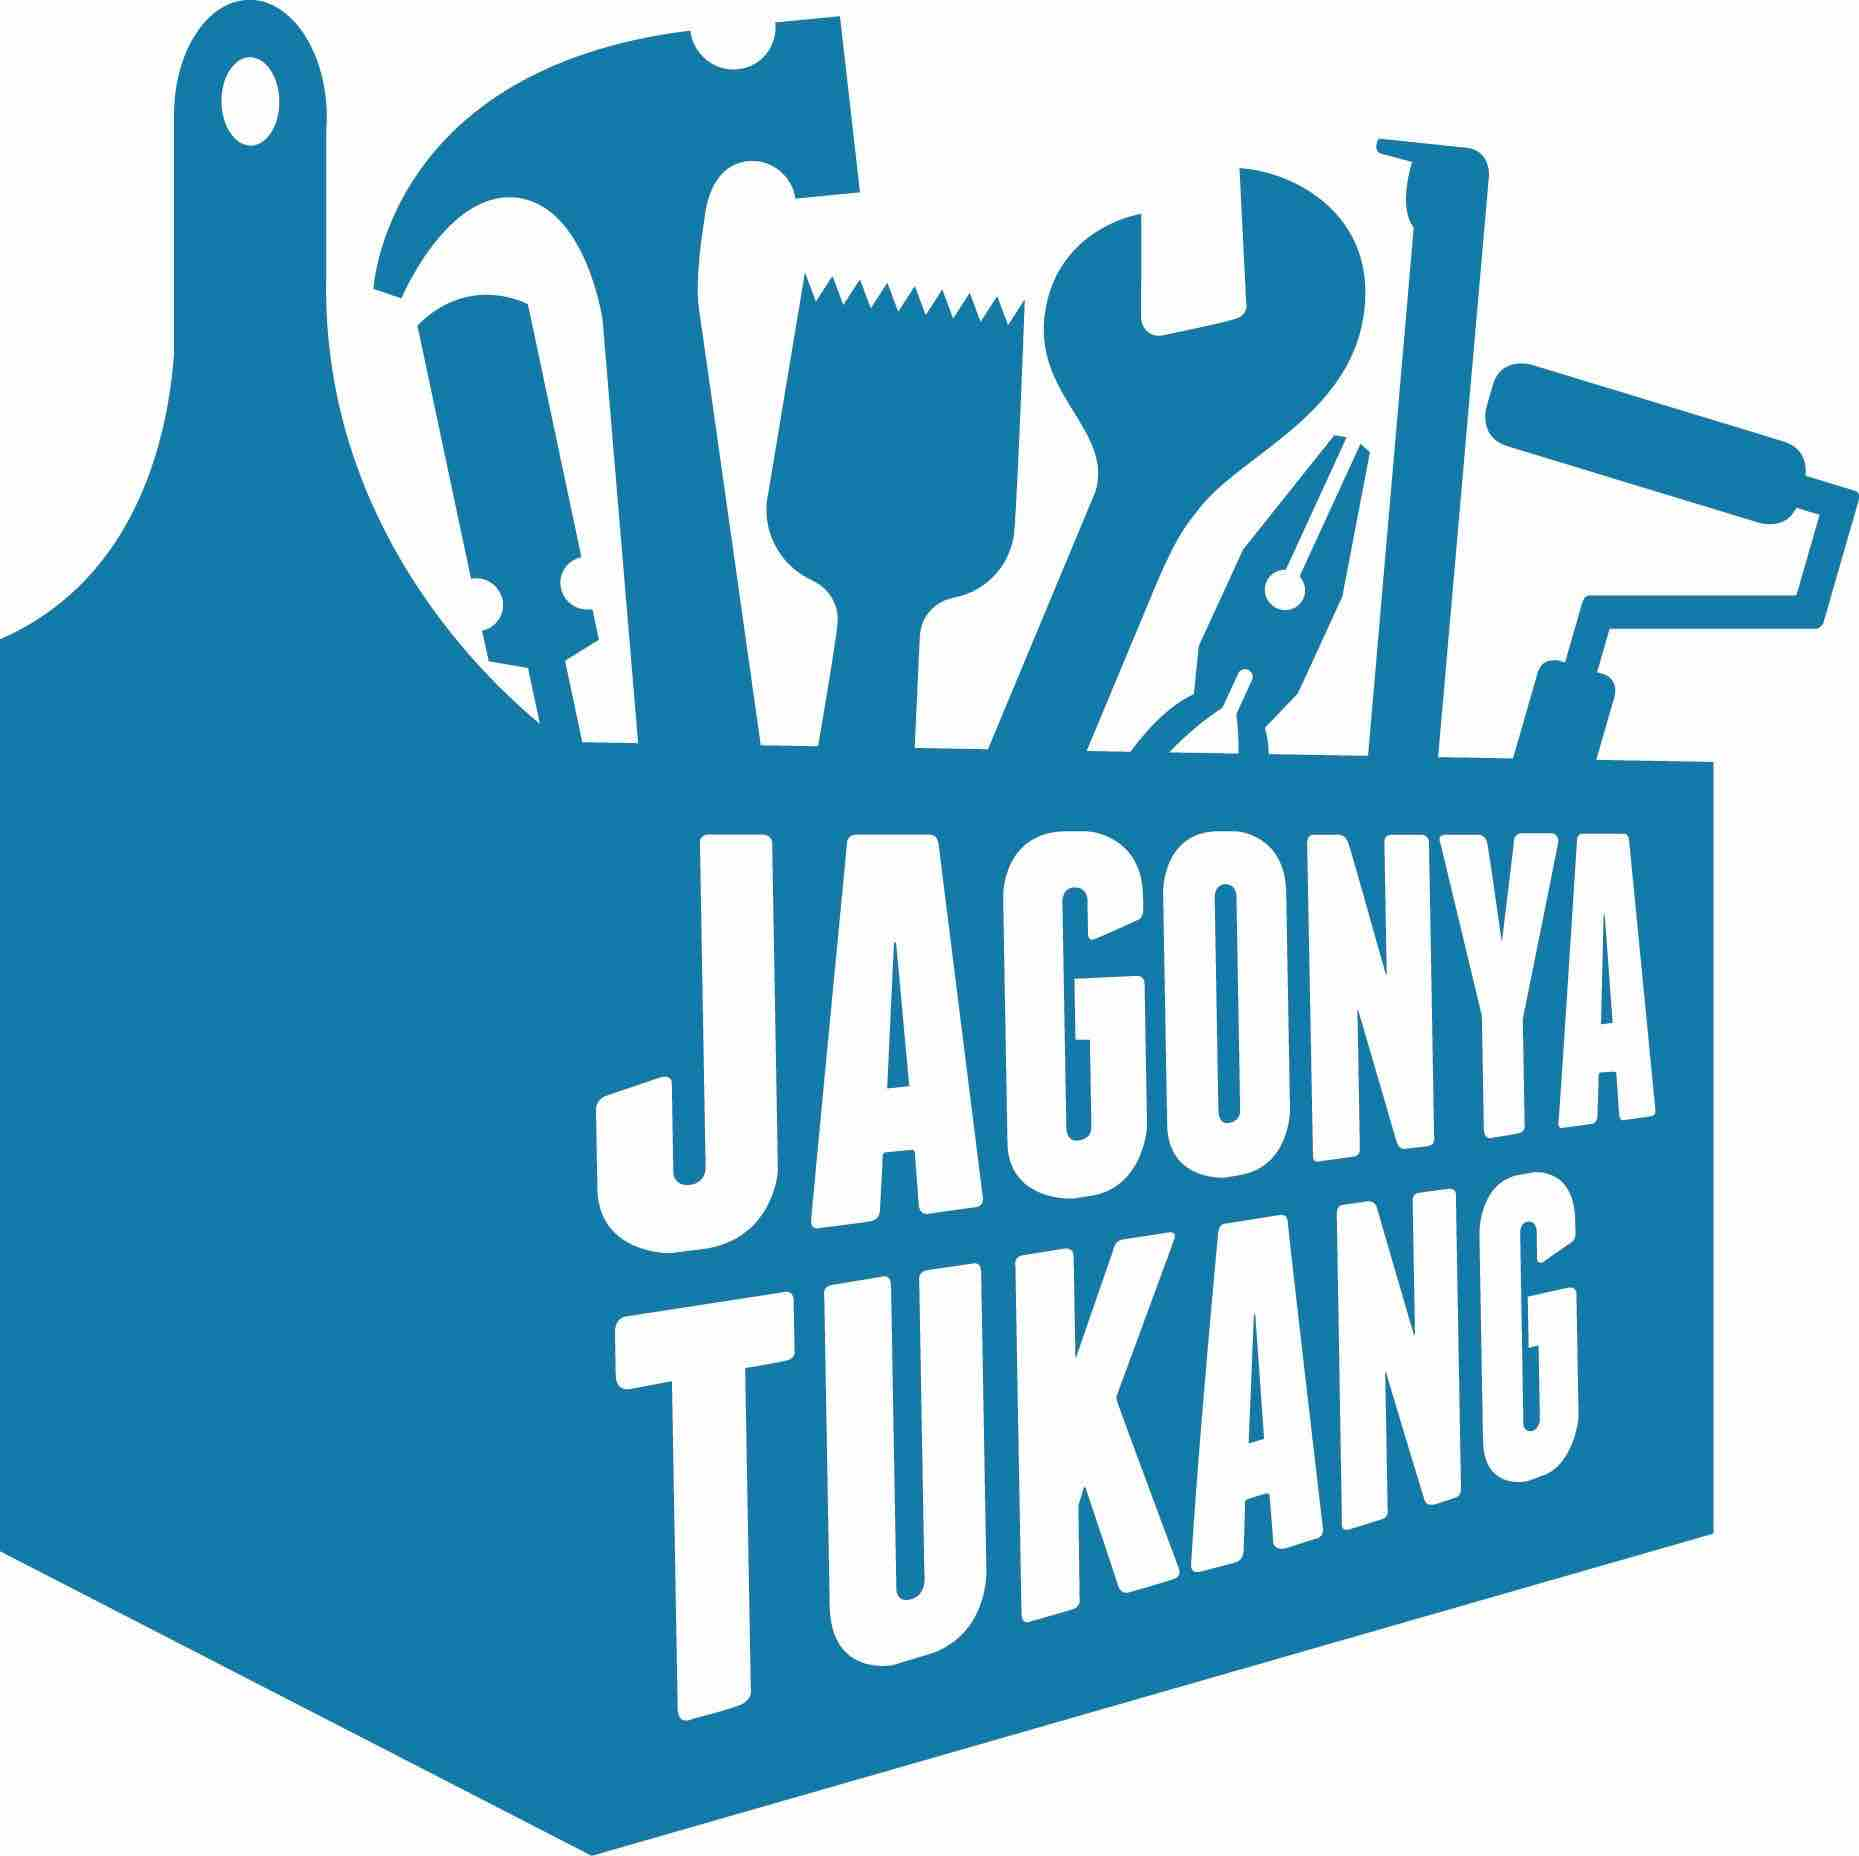 Jagonya tukang logo final biru tua transparent copy 3